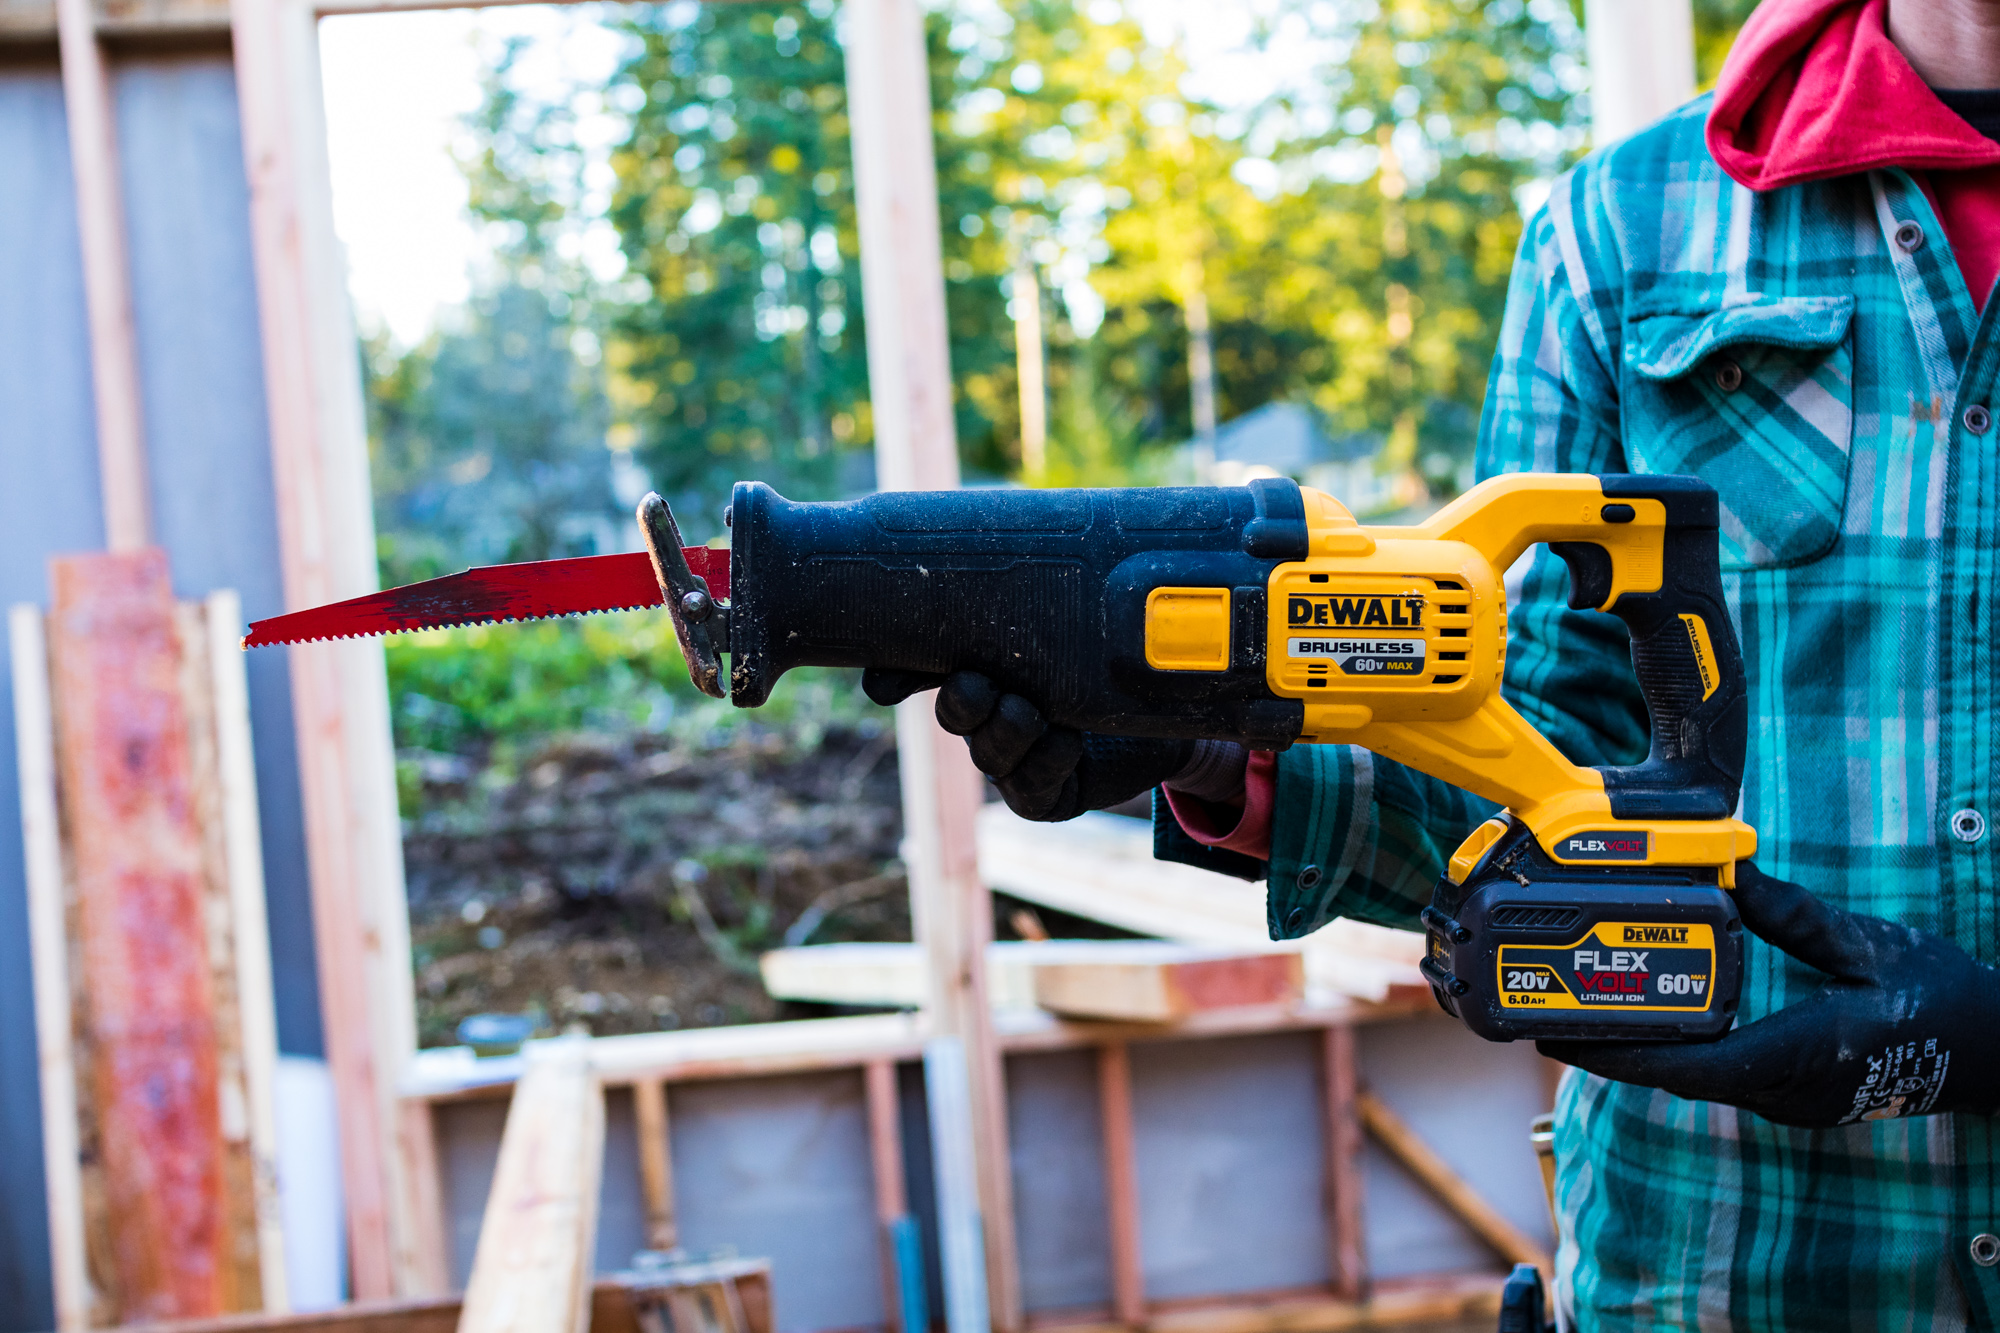 Dewalt cordless flexvolt recip saw tools of the trade cordless dewalt cordless flexvolt recip saw tools of the trade cordless tools saws tool tests dewalt keyboard keysfo Choice Image